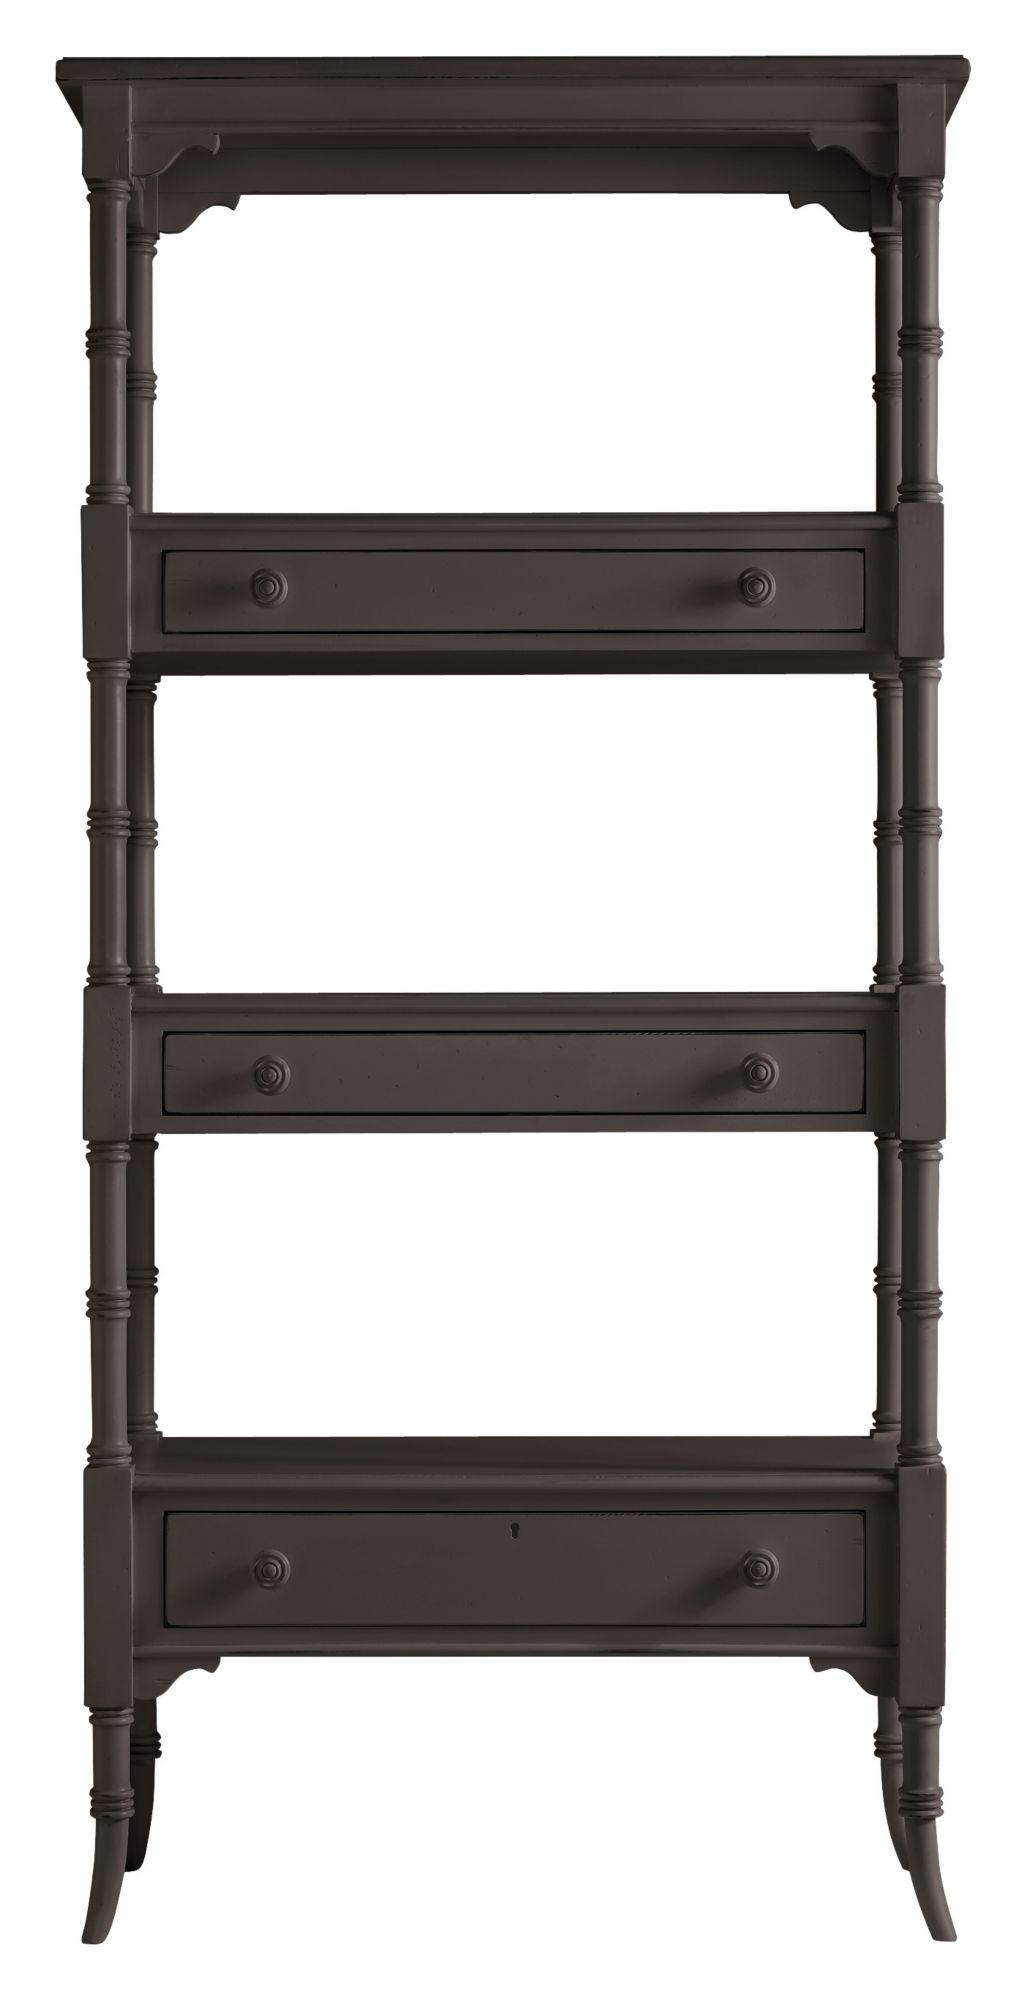 Stanley Furniture Coastal Living Retreat Etagere - Item Number: 411-85-18